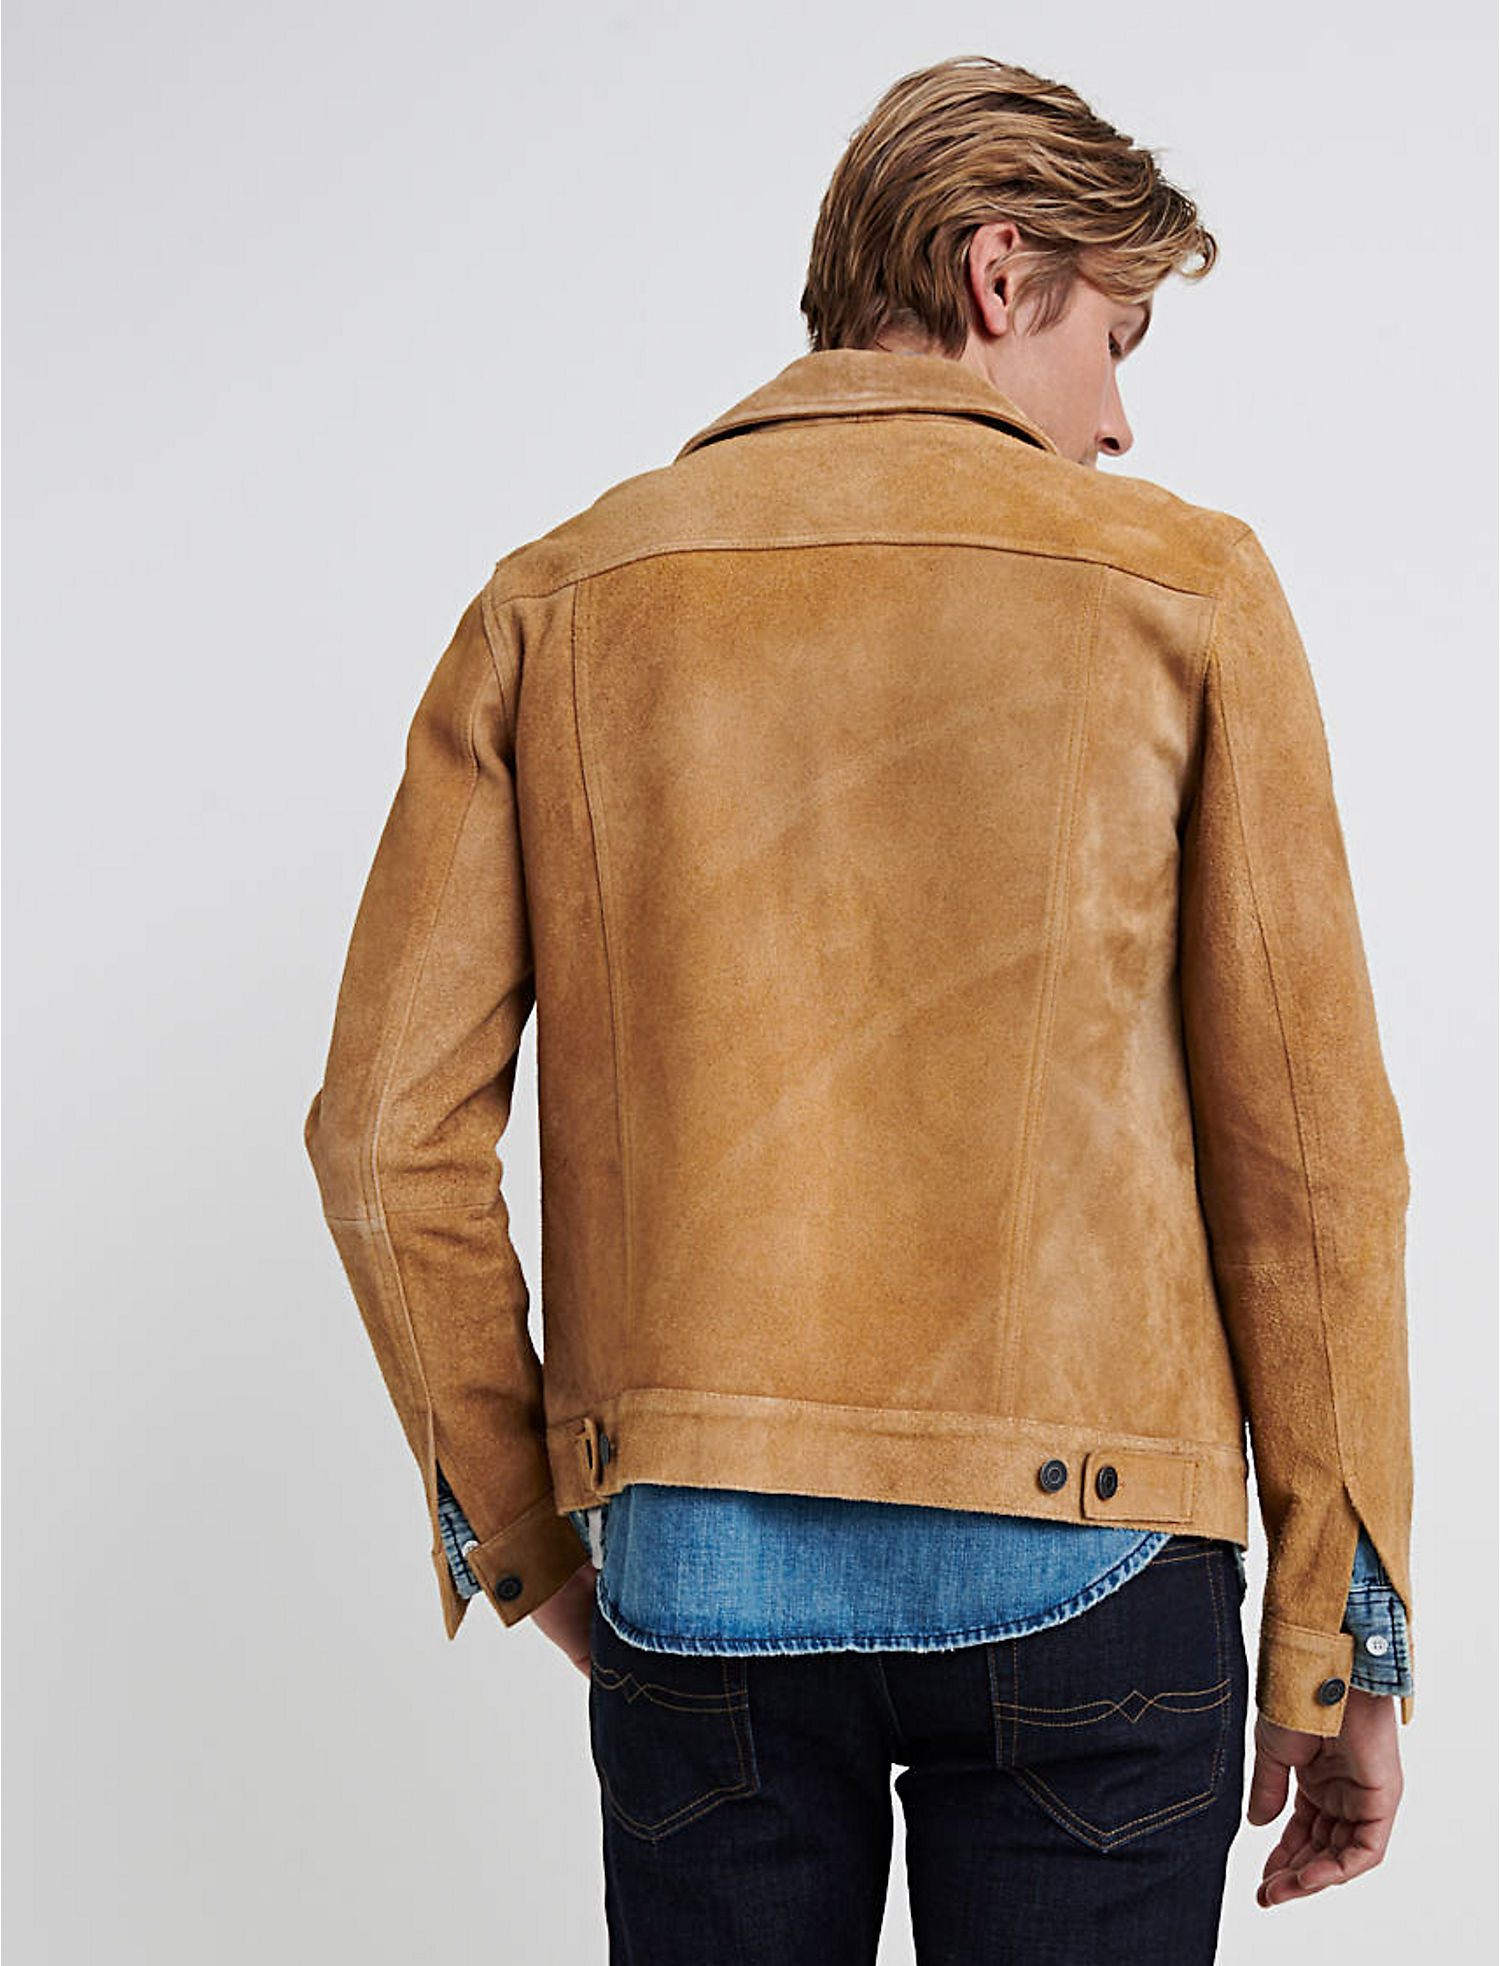 a6388be82 Details about Lucky Brand Men's Suede Trucker Jacket